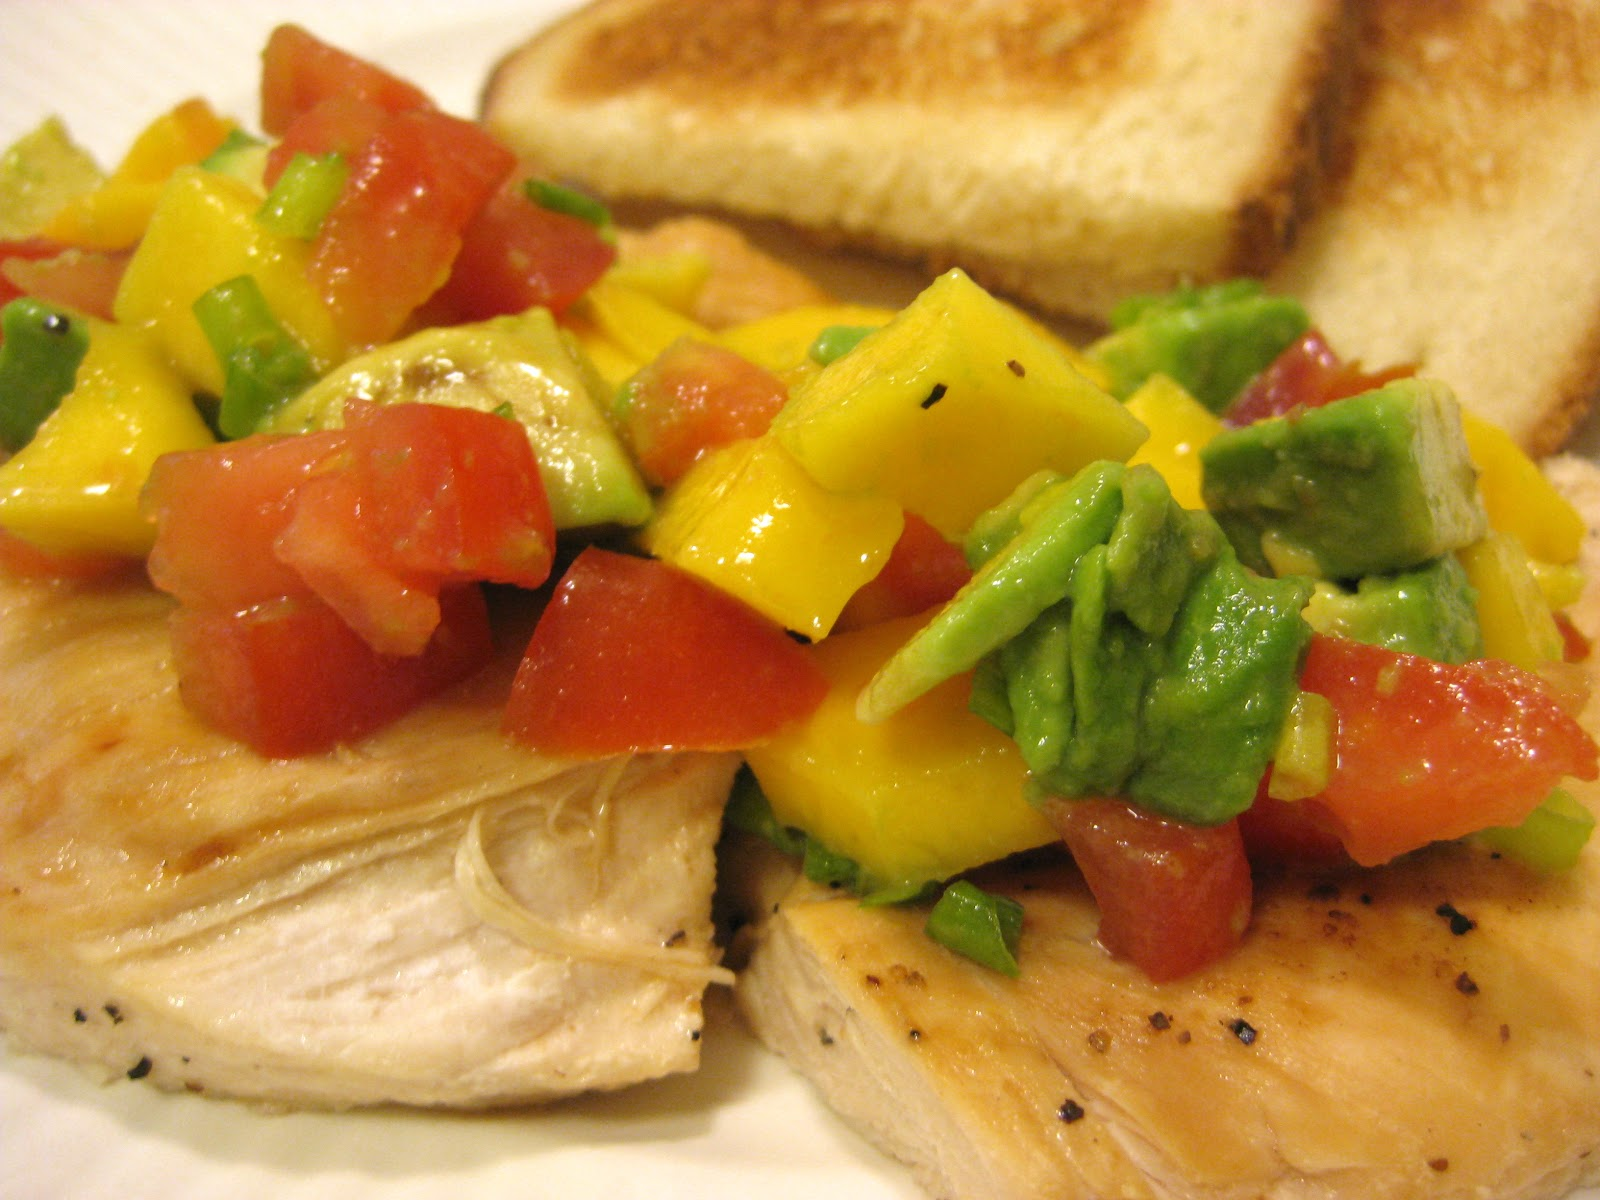 Mangoes & Lemons: Grilled Chicken with Mango Avocado Salsa